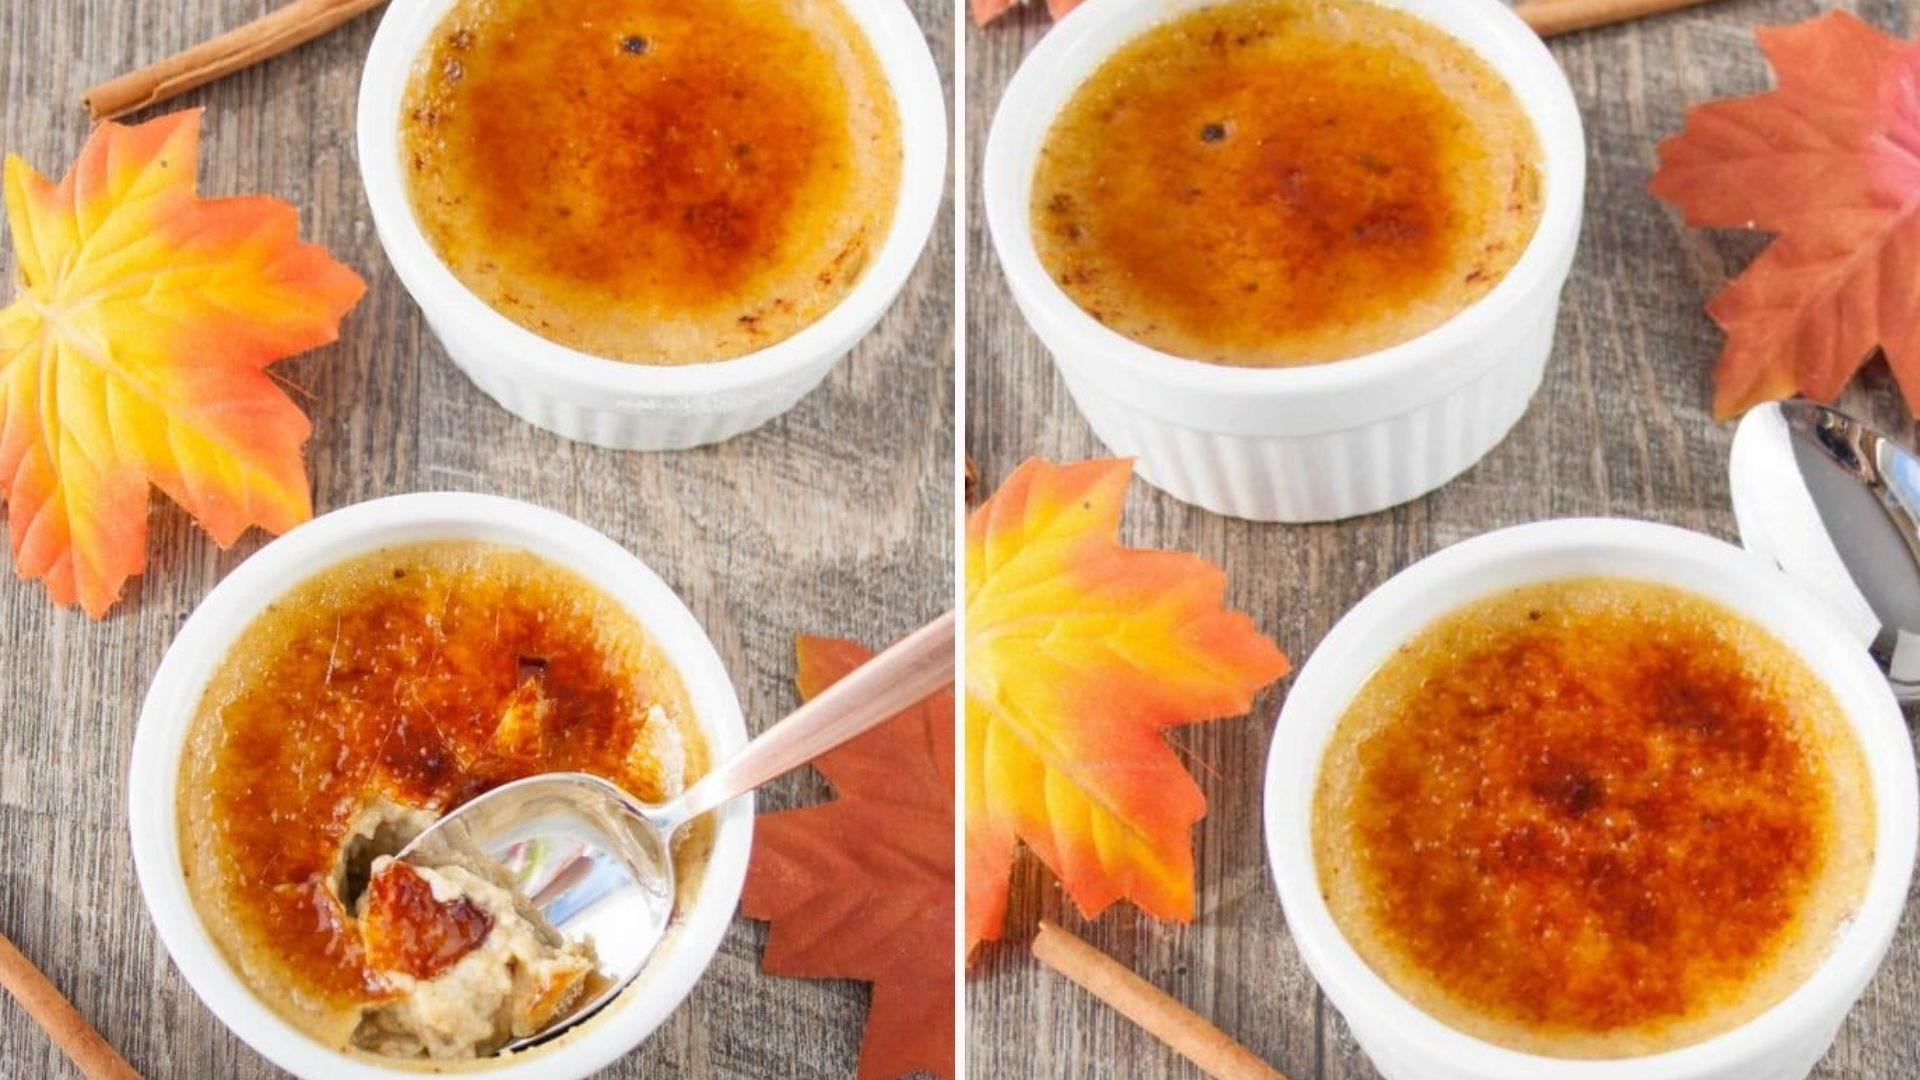 Two images displaying maple spice creme brulee with multiple faux fall leaves and cinnamon sticks. The left image is a close up of the inside of the custard with a spoon scooping out a bite sized amount.